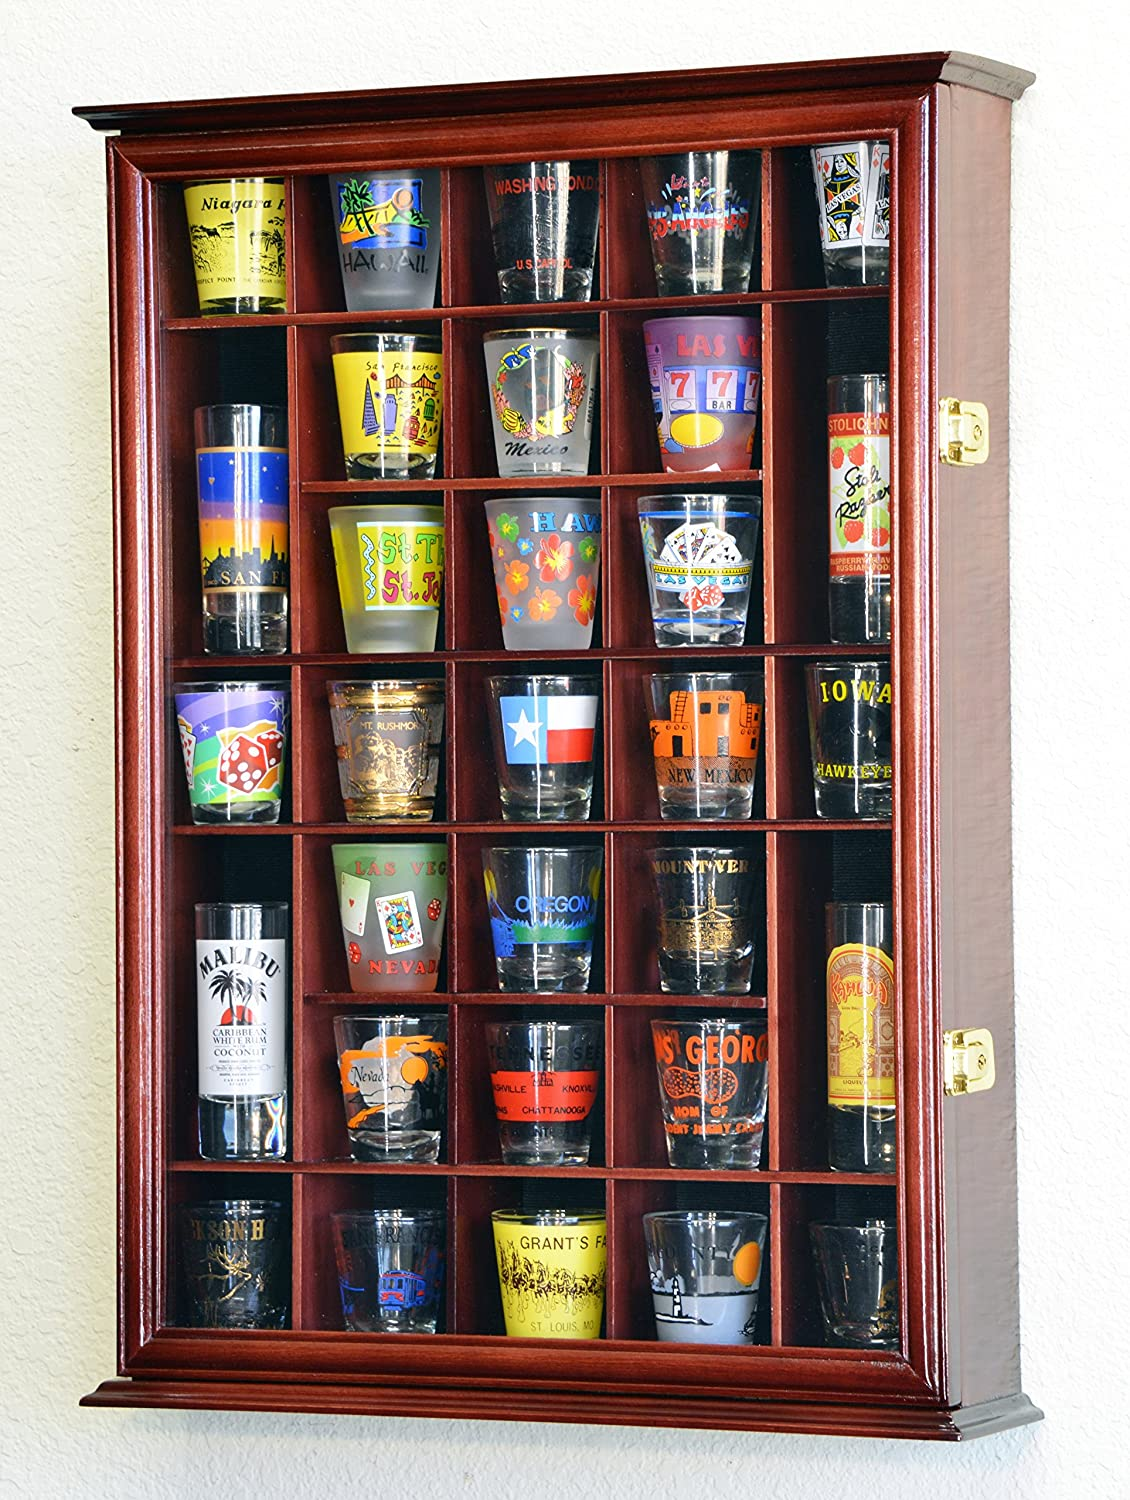 31 Shot Glass Shooter Display Case Holder Cabinet Wall Rack -Black sfDisplay.com LLC. dc8137c